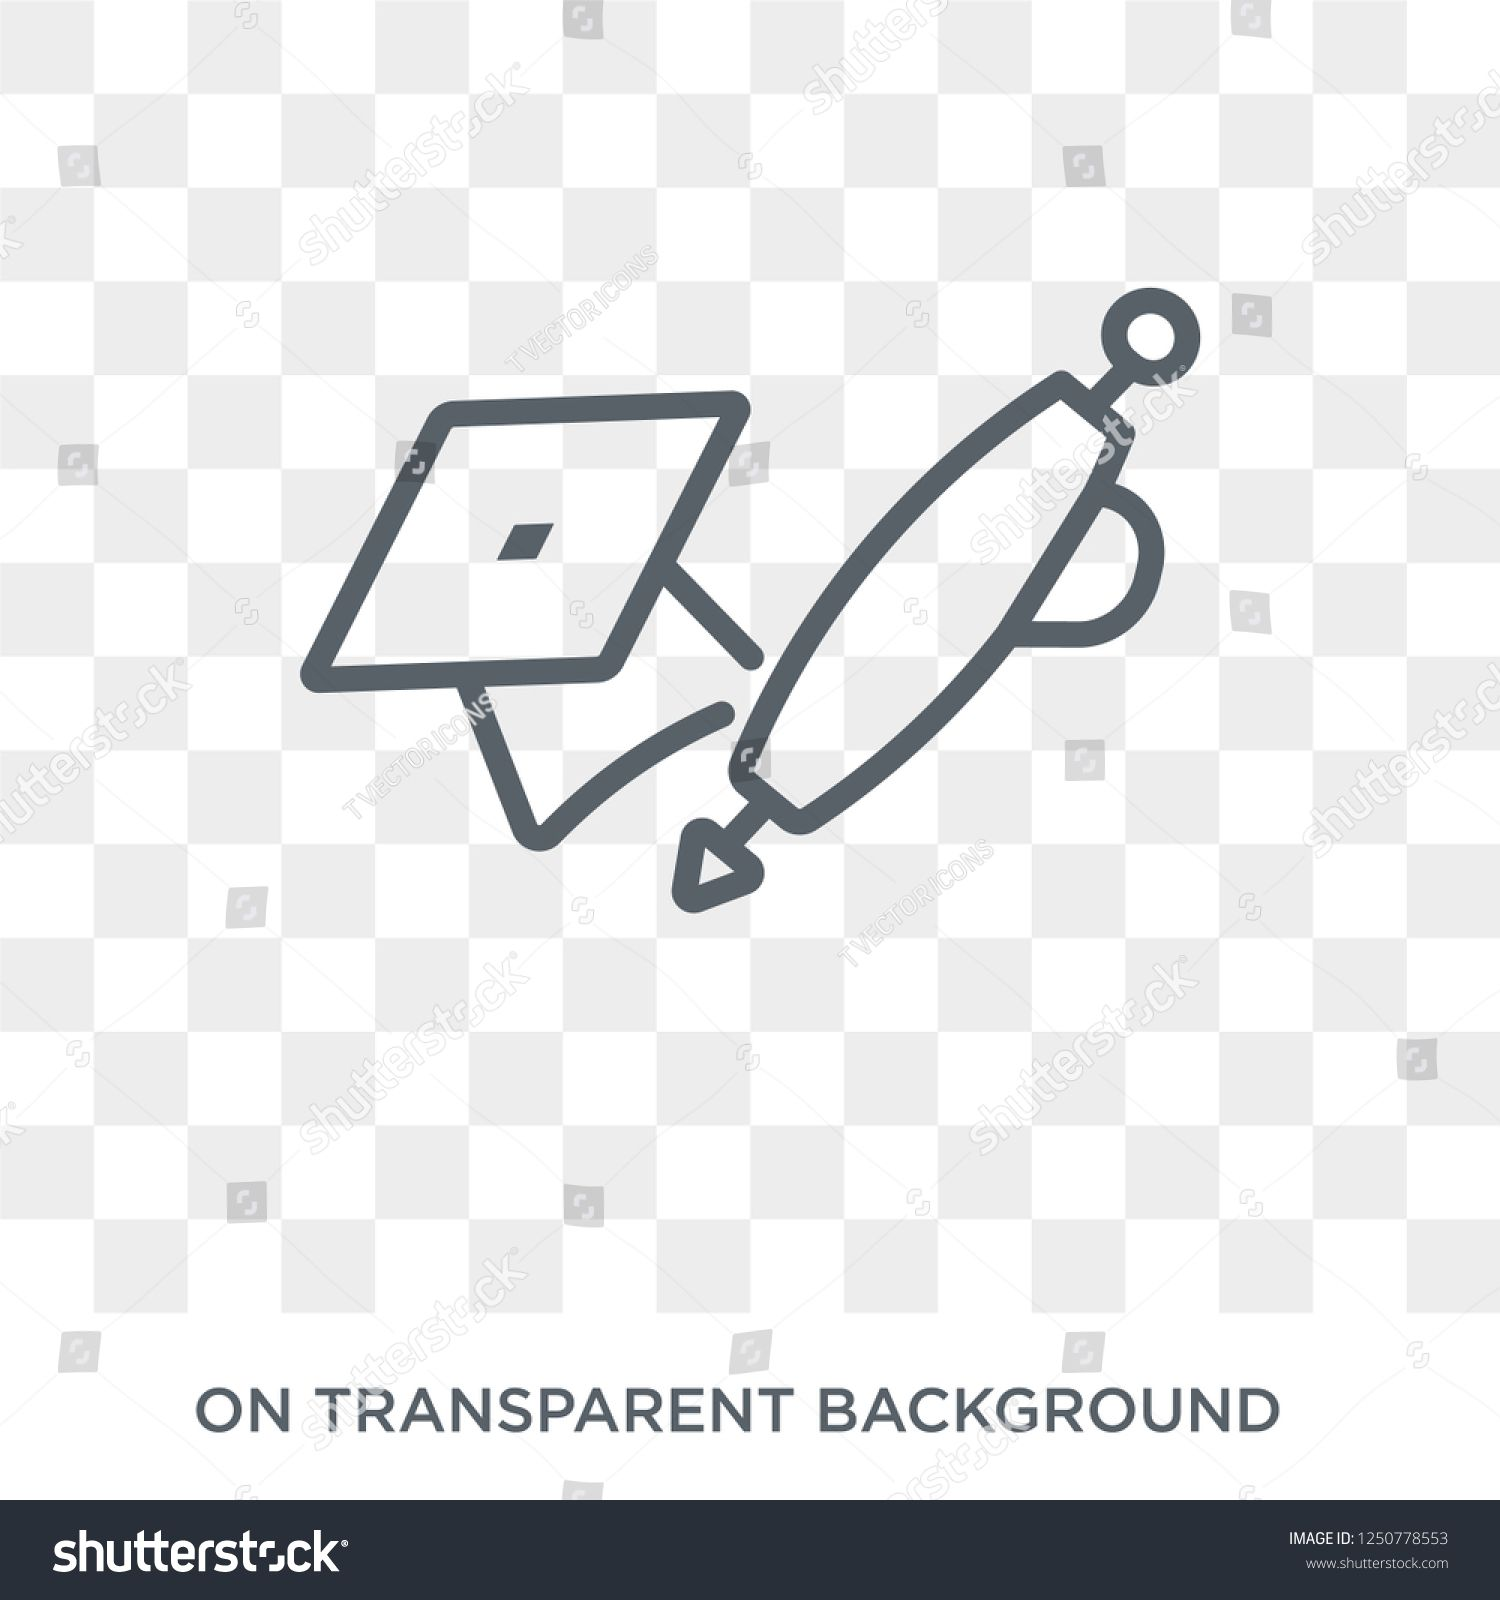 Education Icon Trendy Flat Vector Education Icon On Transparent Background From E Learning And Educatio With Images Education Icon Photography Business Cards Trendy Flats